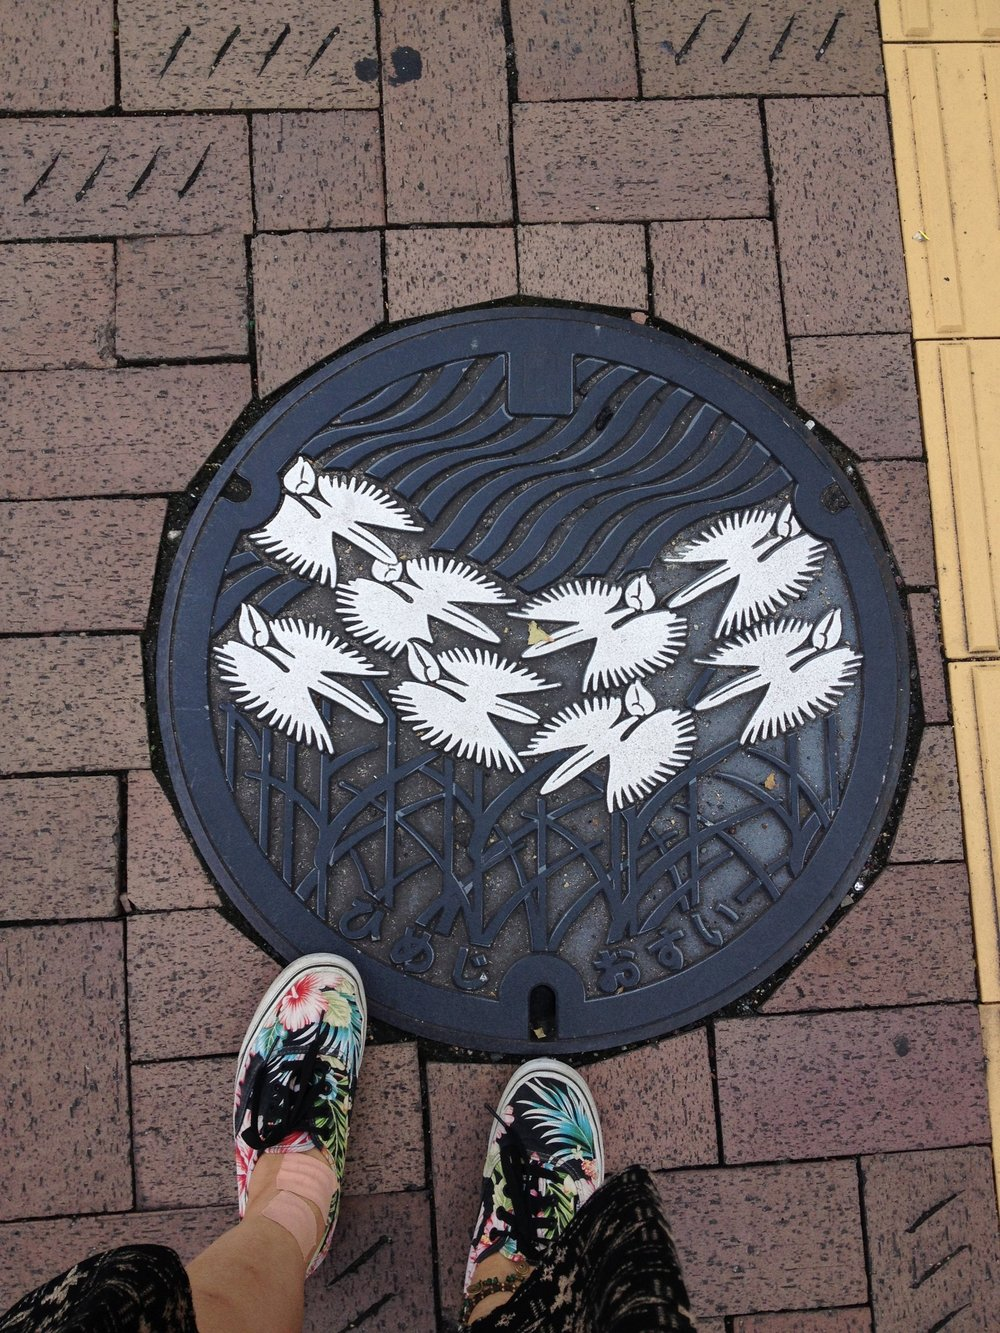 Manhole in Japan is a work of art